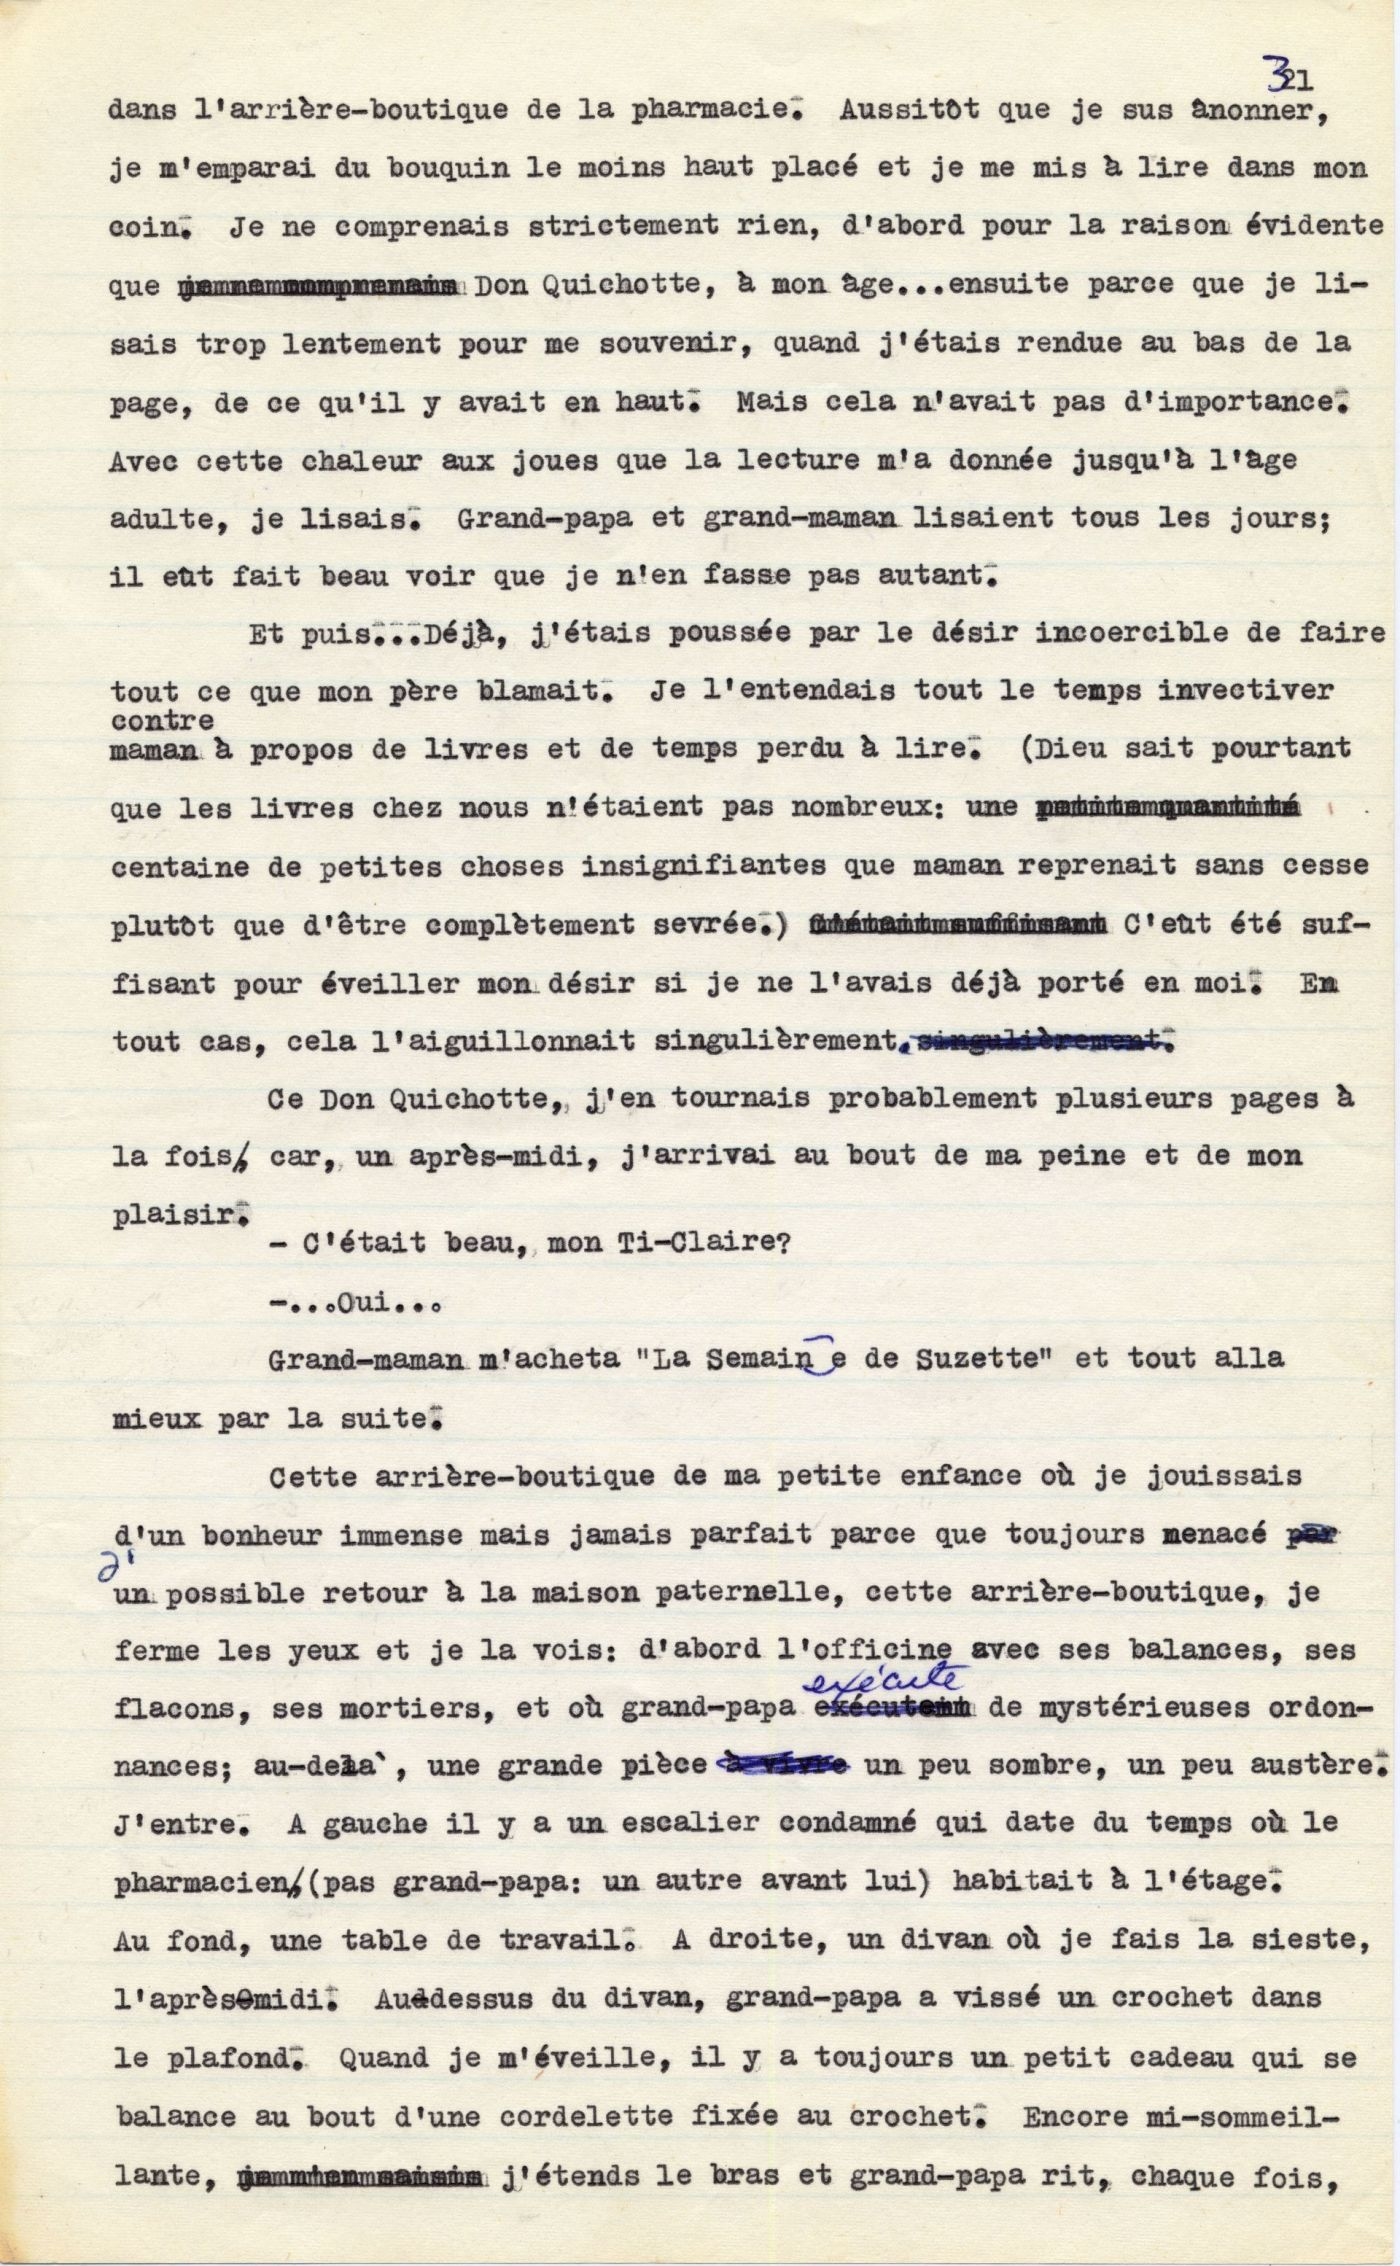 Manuscript typed in French, with handwritten corrections in blue ink. It includes four paragraphs, as well as a short section of dialogue.